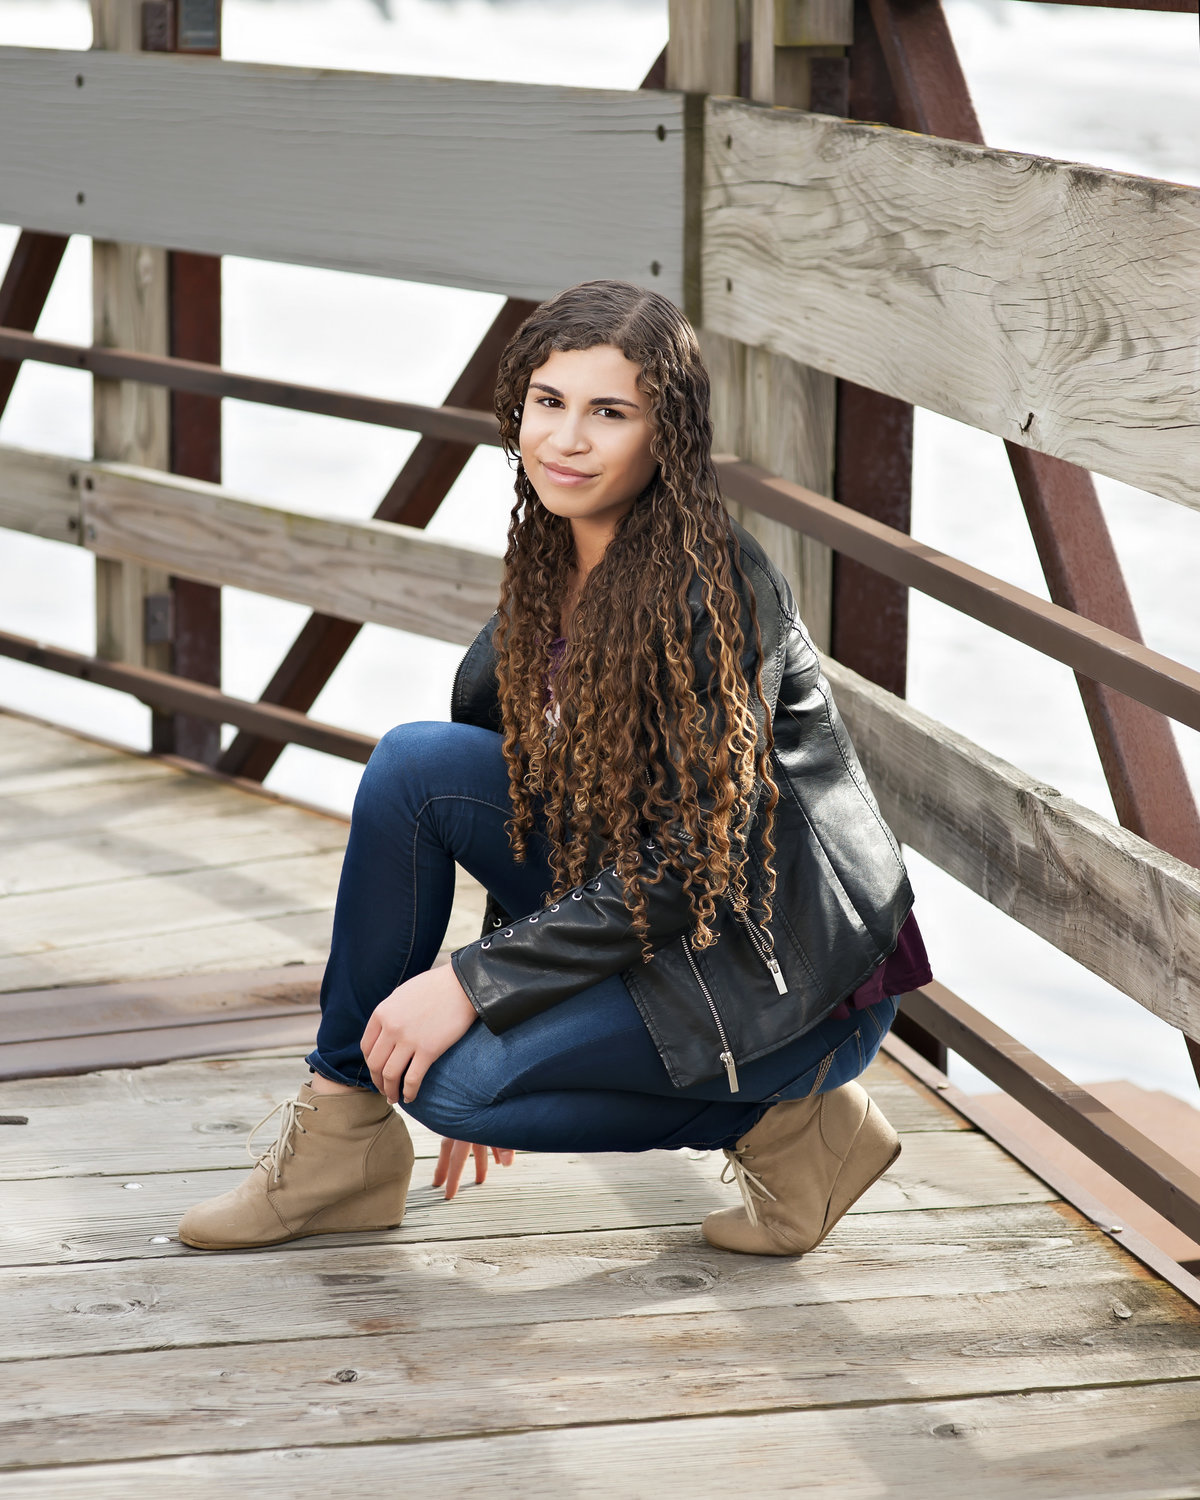 senior pictures in lansing michigan on the bridge